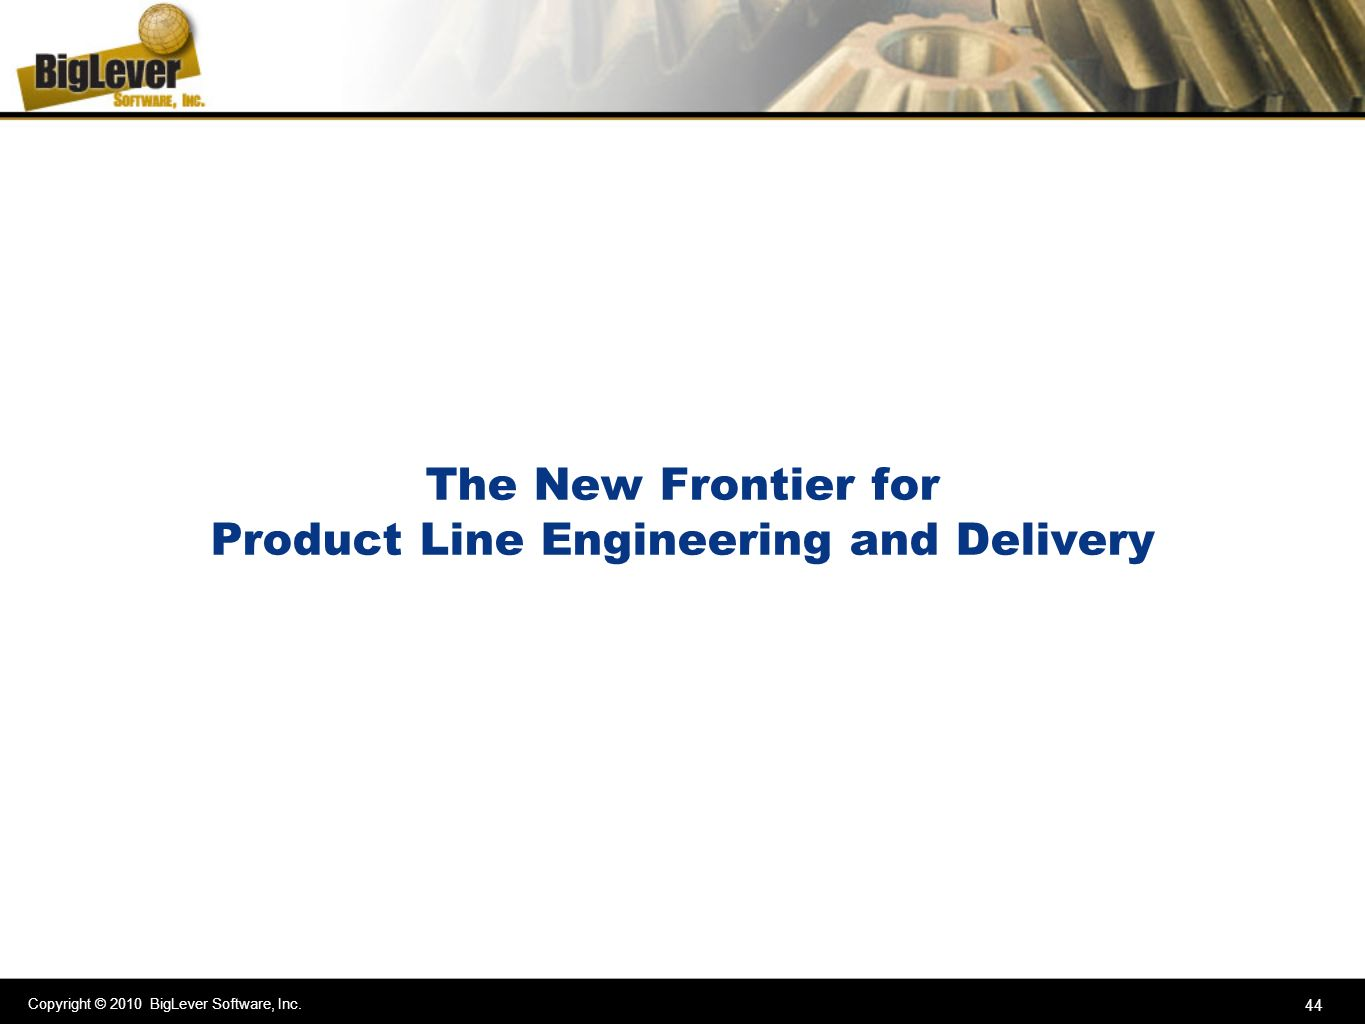 The New Frontier for Product Line Engineering and Delivery